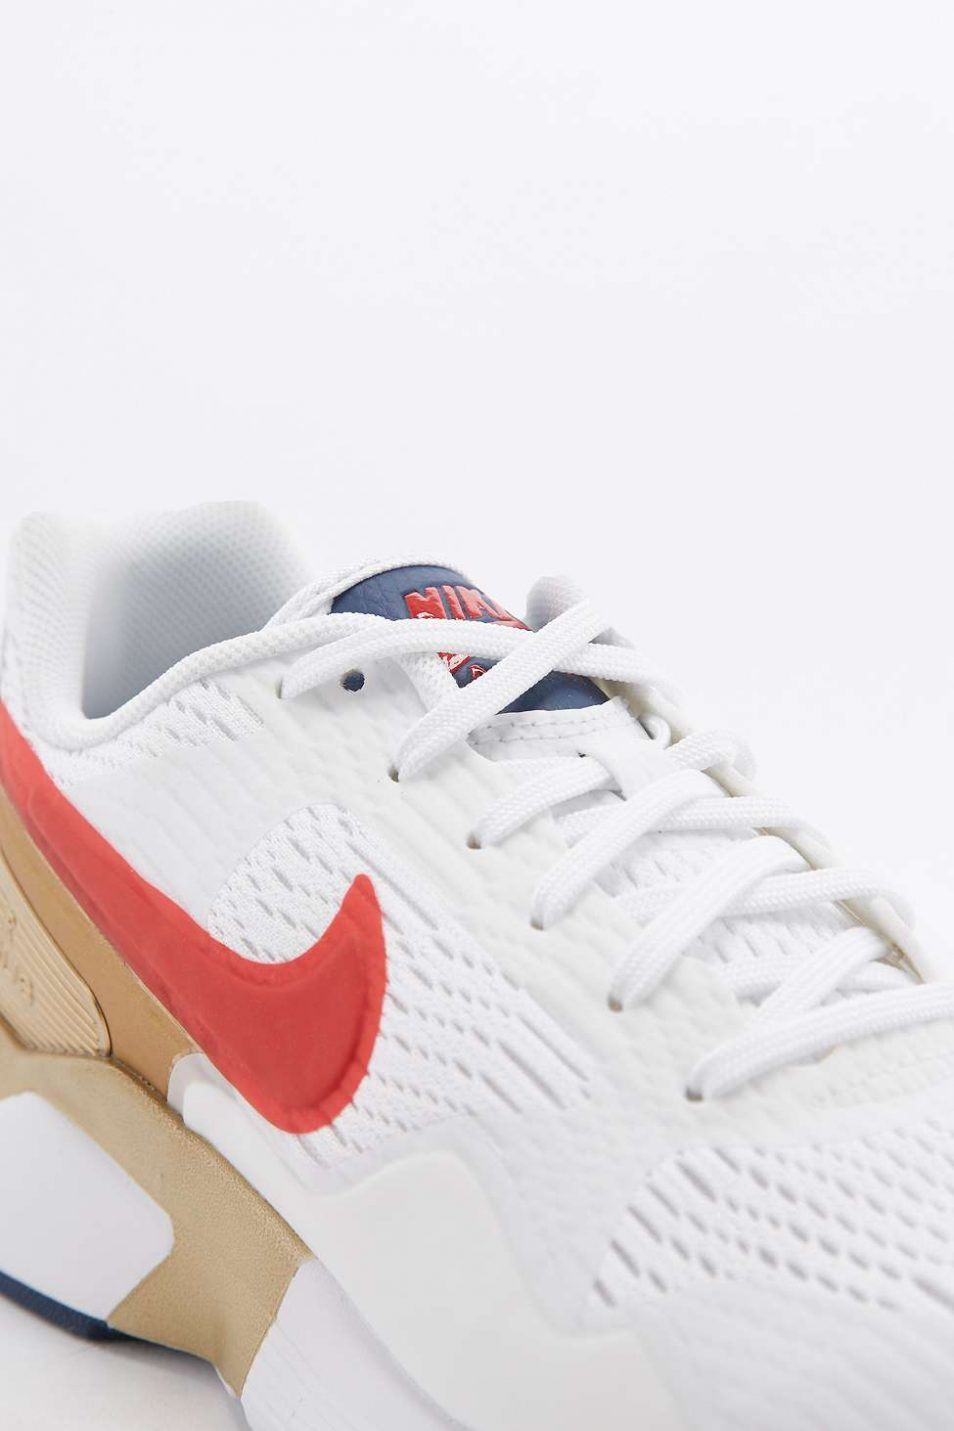 Nike Air Pegasus 92 Red Gold and Blue Trainers 4